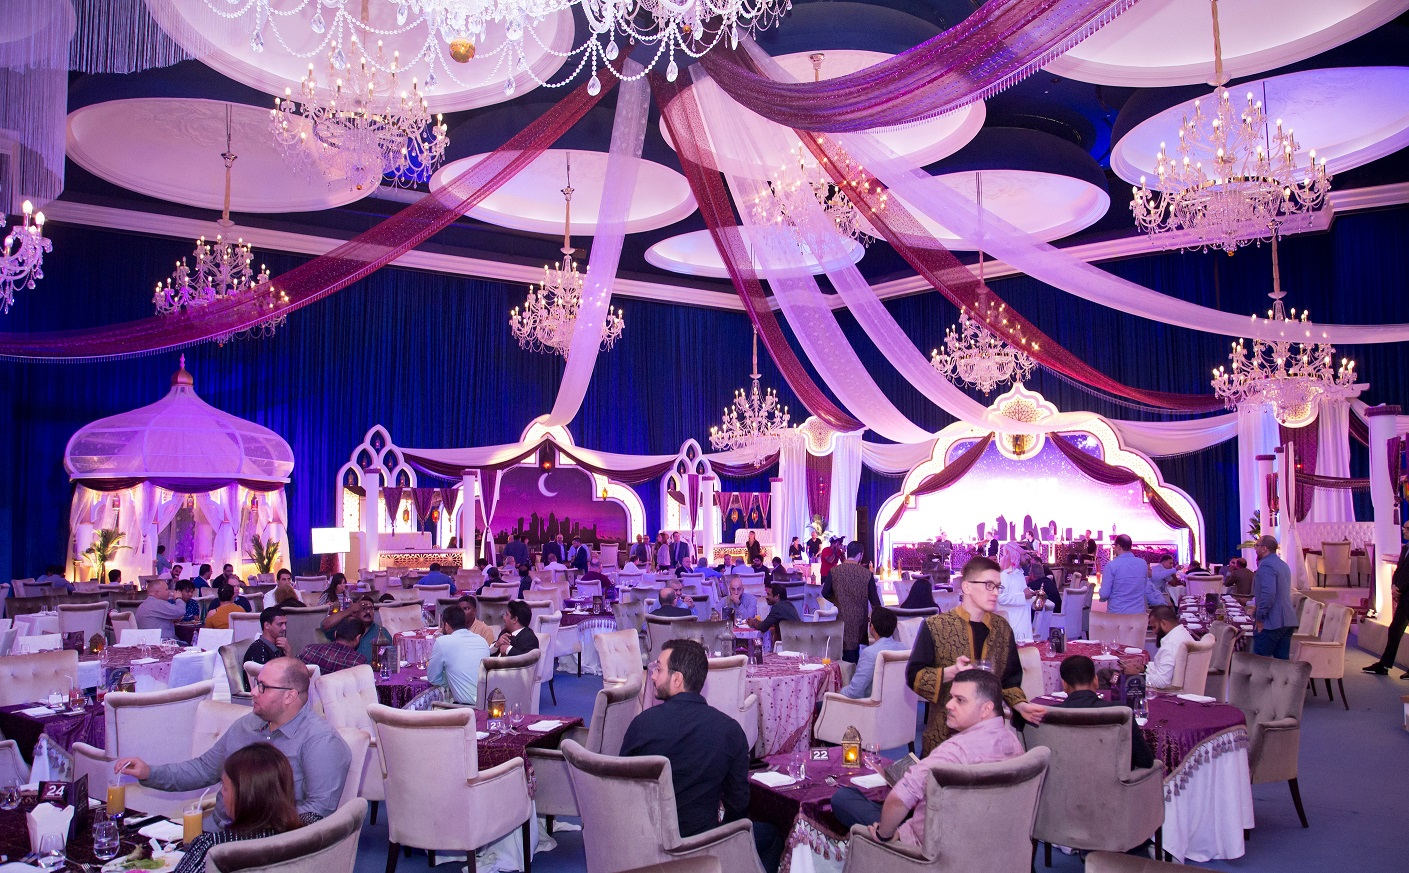 QIG hosts Suhoor banquet for its corporate partners and employees